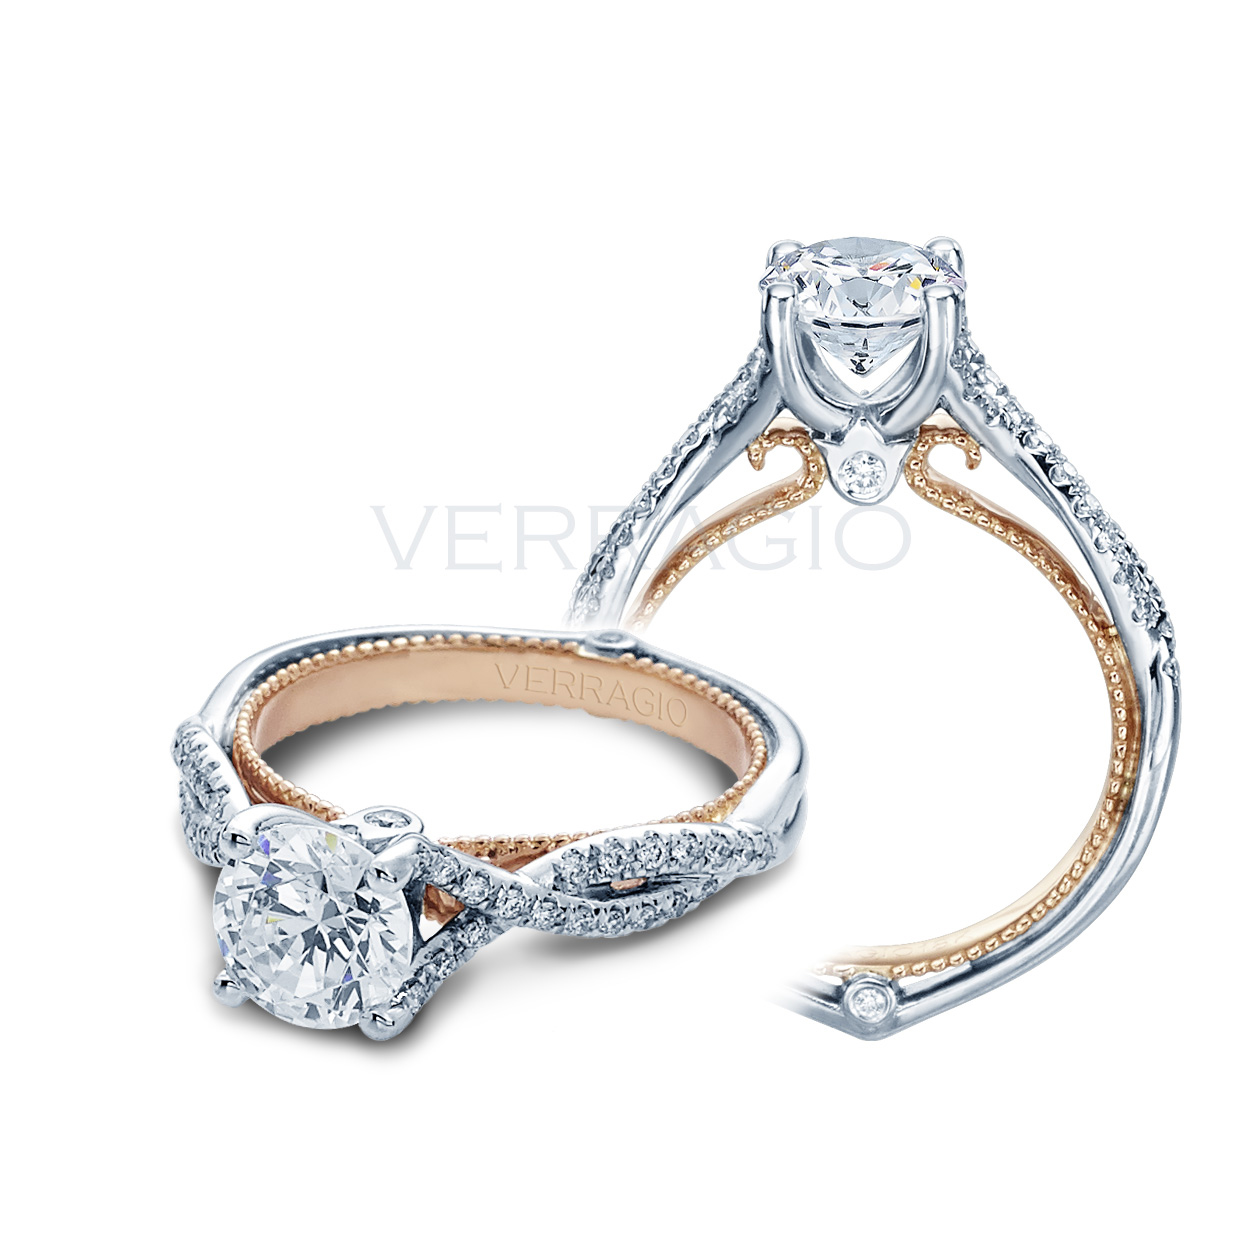 Verragio engagement rings 025ctw diamond setting for Wedding rings by verragio